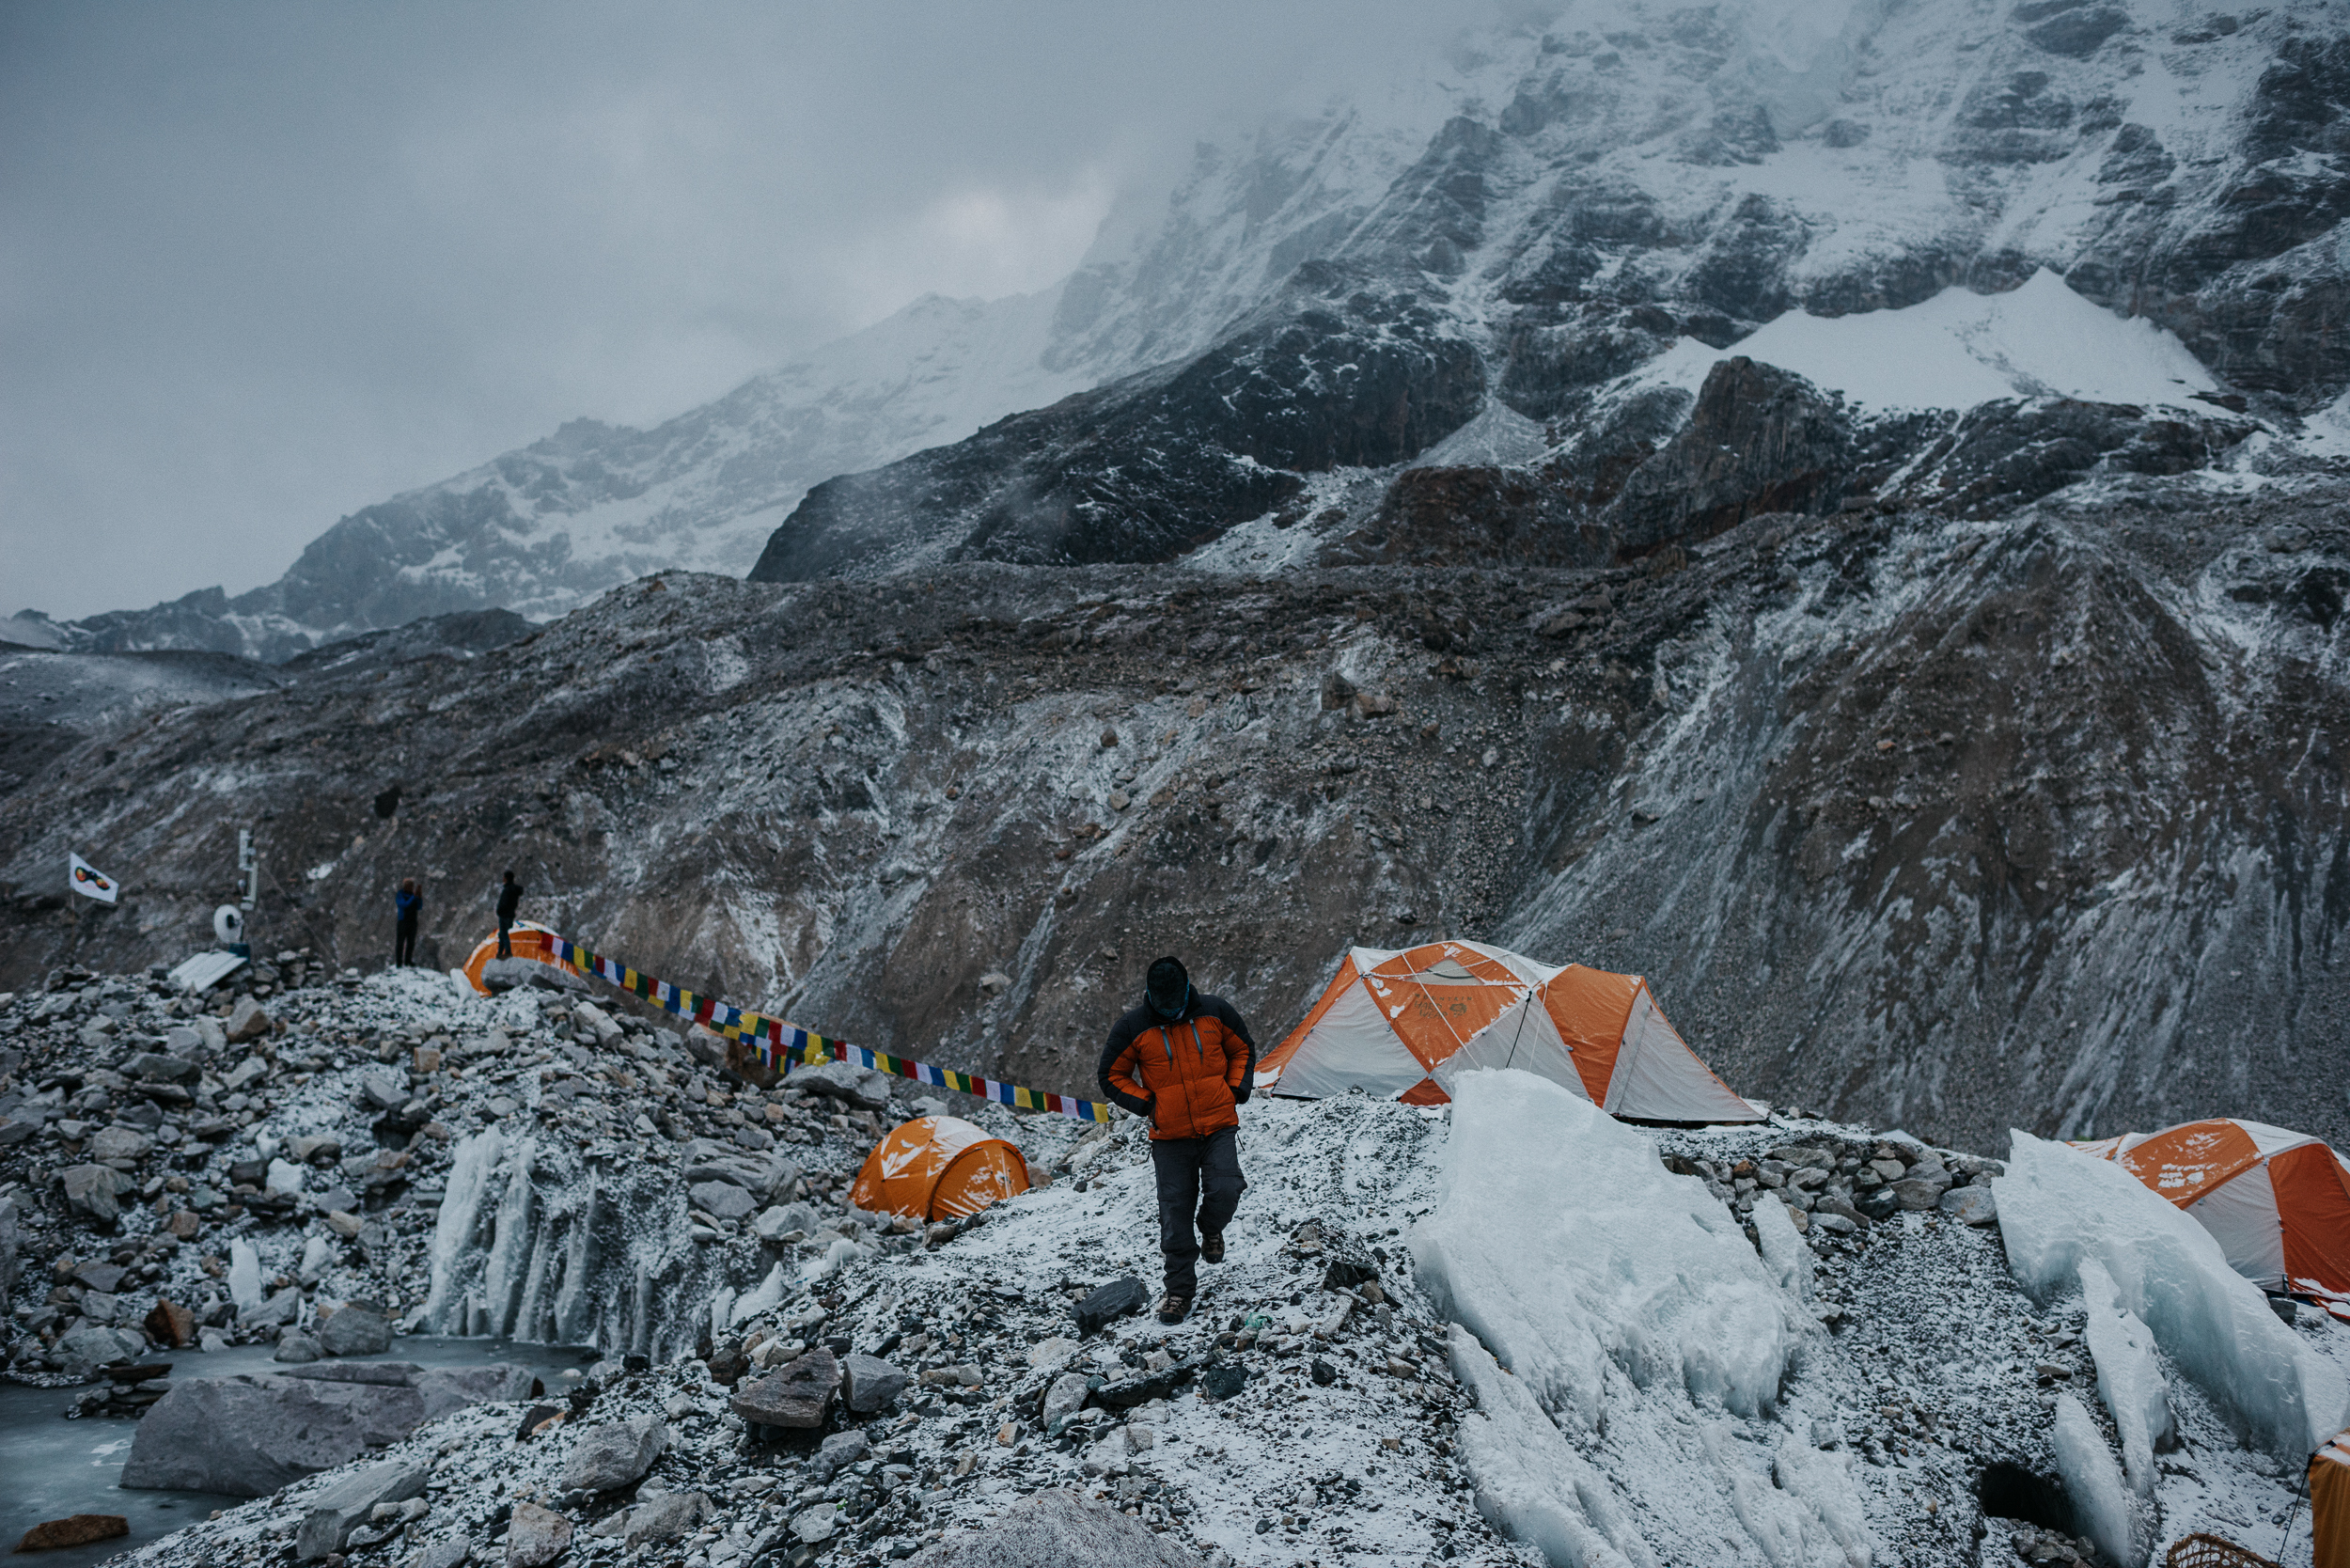 Nepal_EverestBaseCamp_2019_TaraShupe_Photography_DSC_4324.jpg